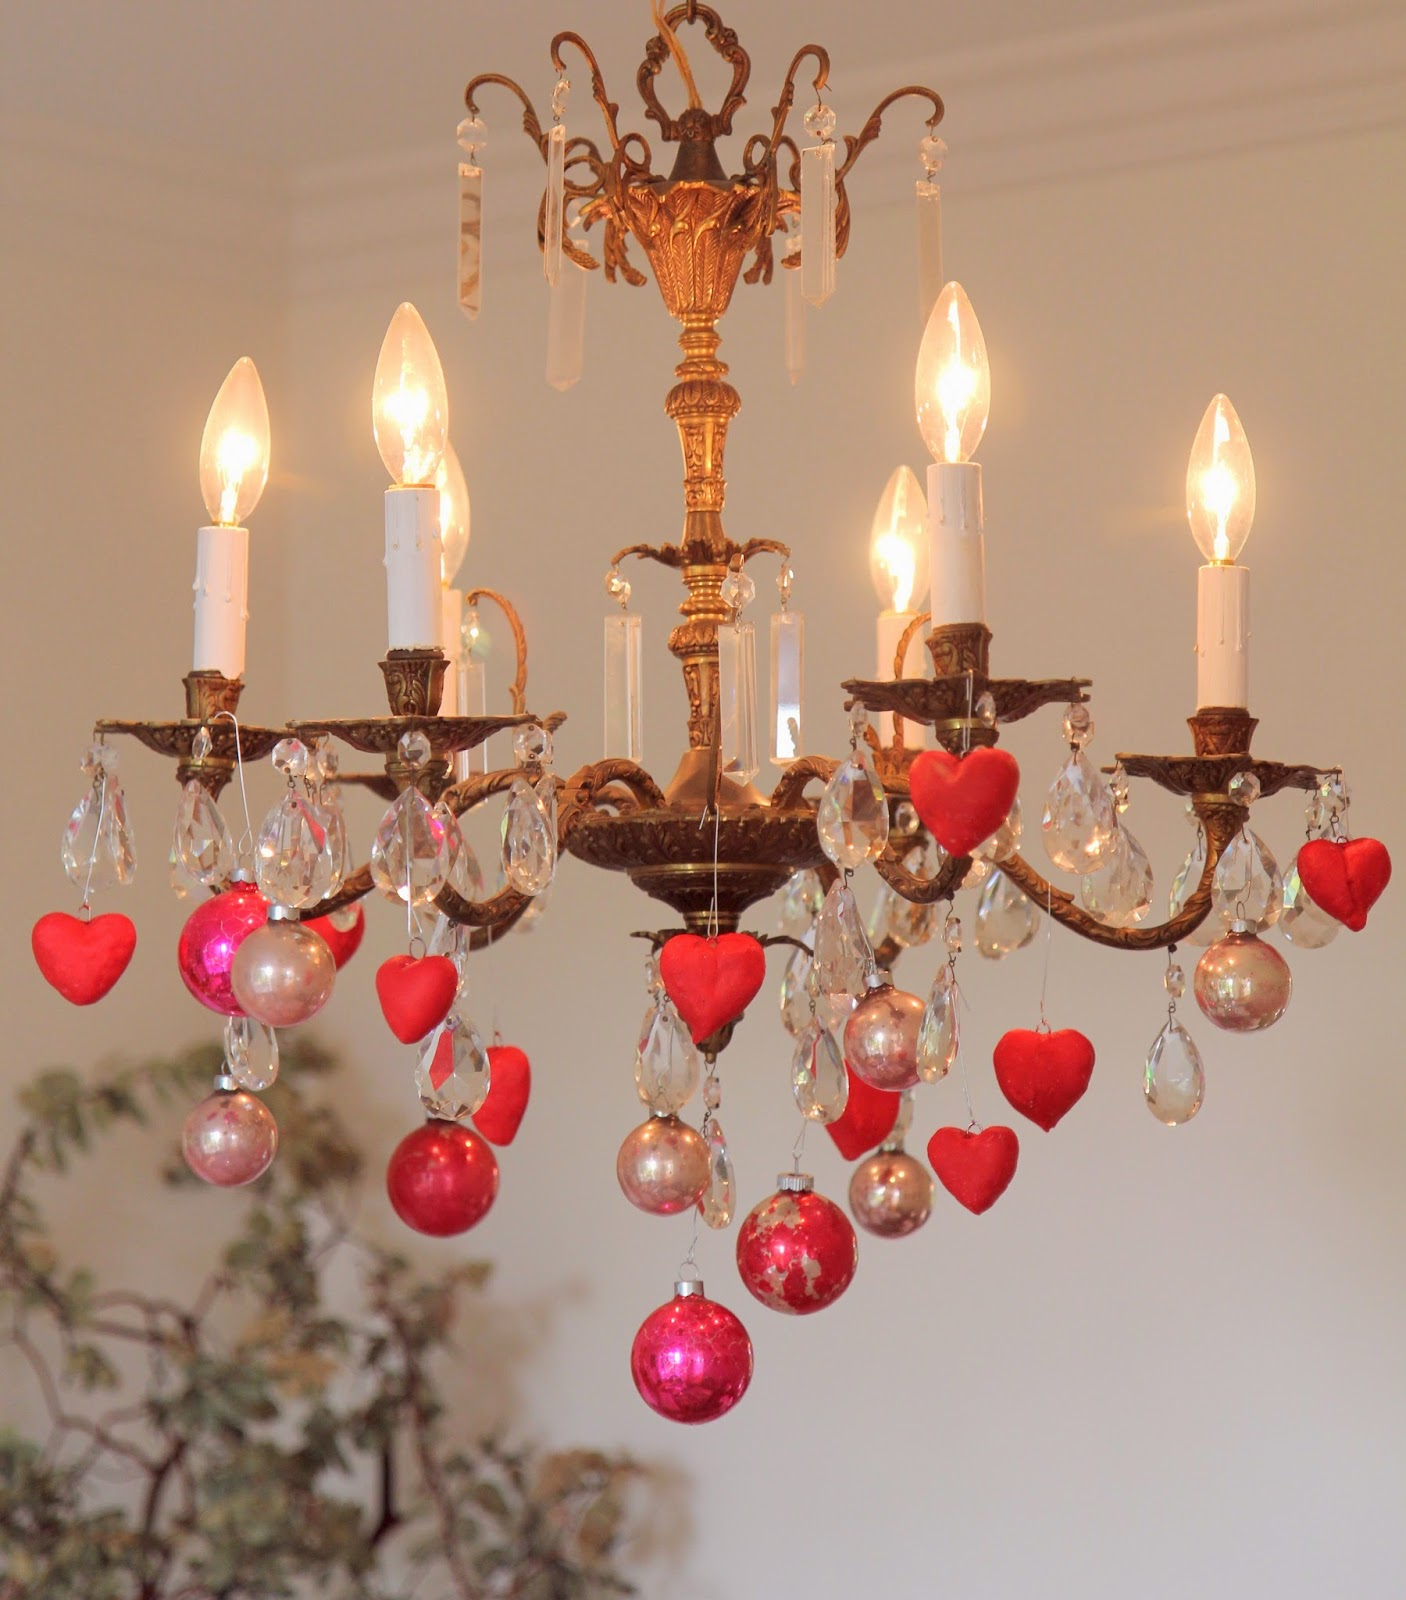 Heart Ornaments for Valentine's Day Home Decor: DIY